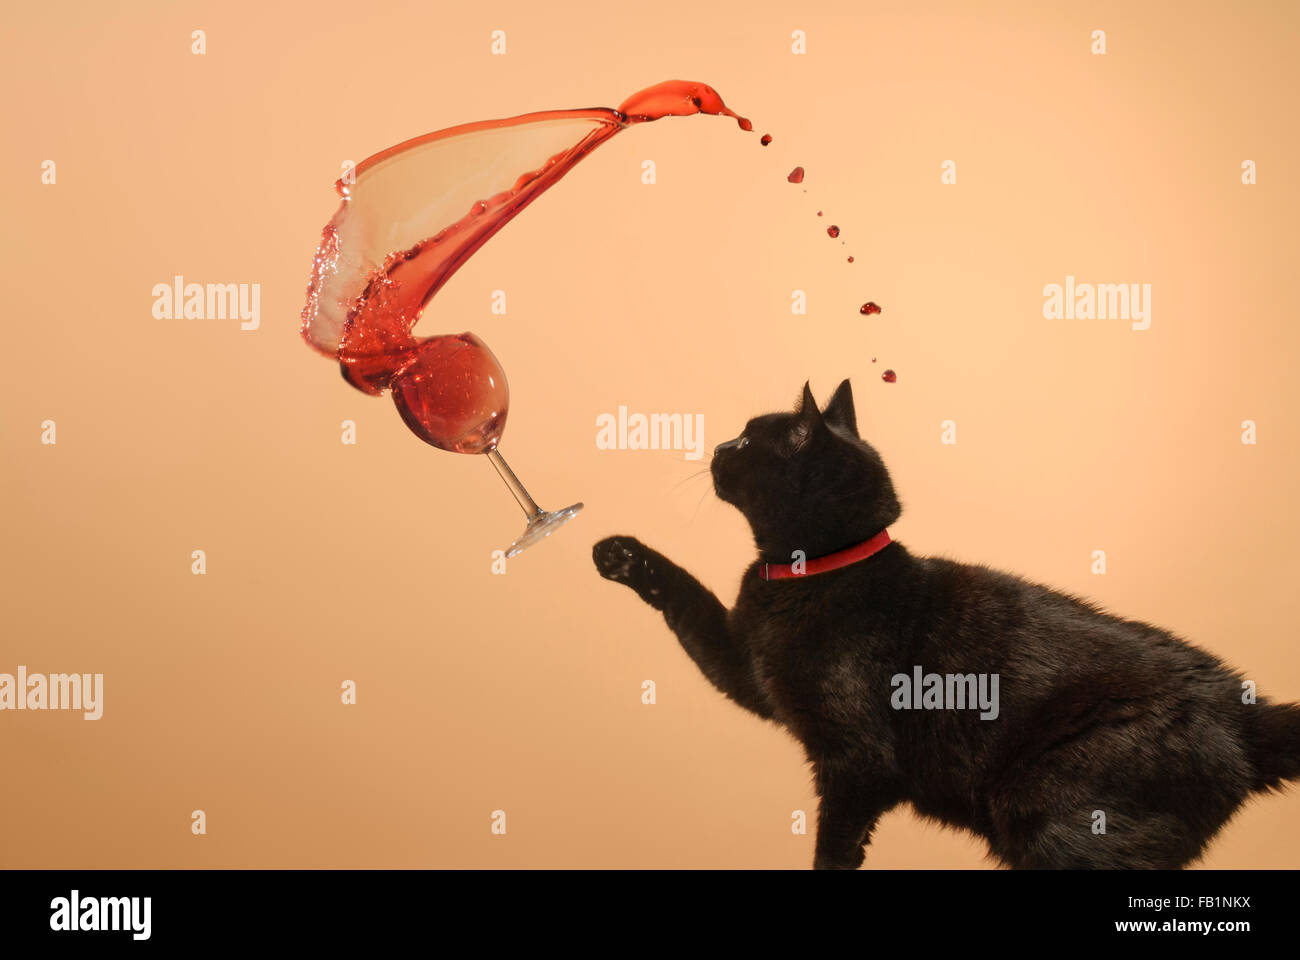 Chat noir de renverser un verre de vin Photo Stock